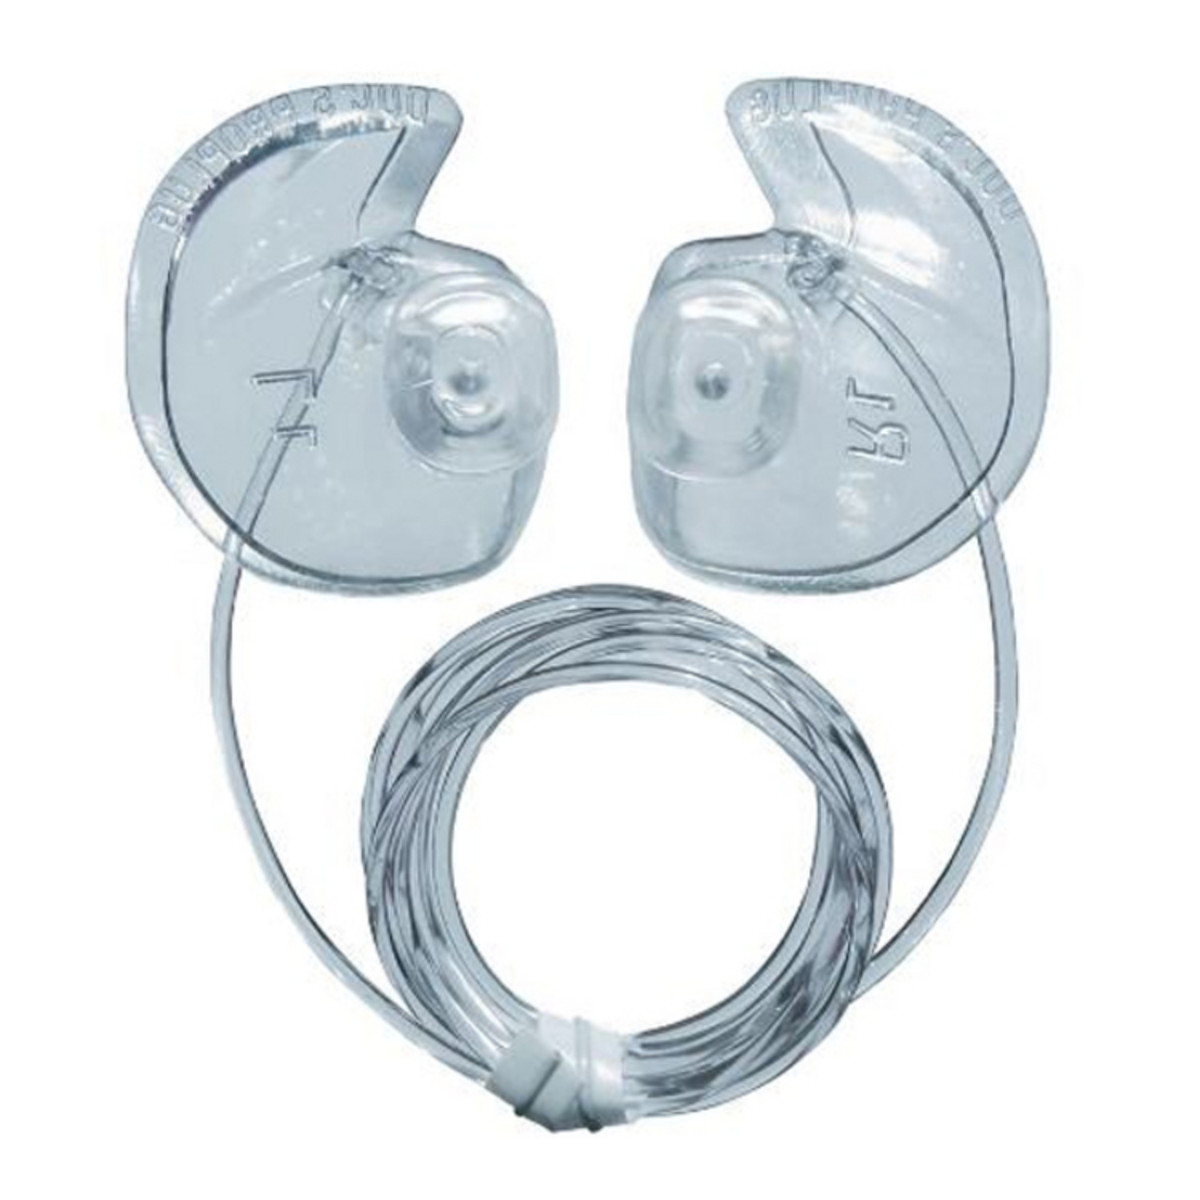 Image of Docs Pro Plugs Vented With Leash X-Small